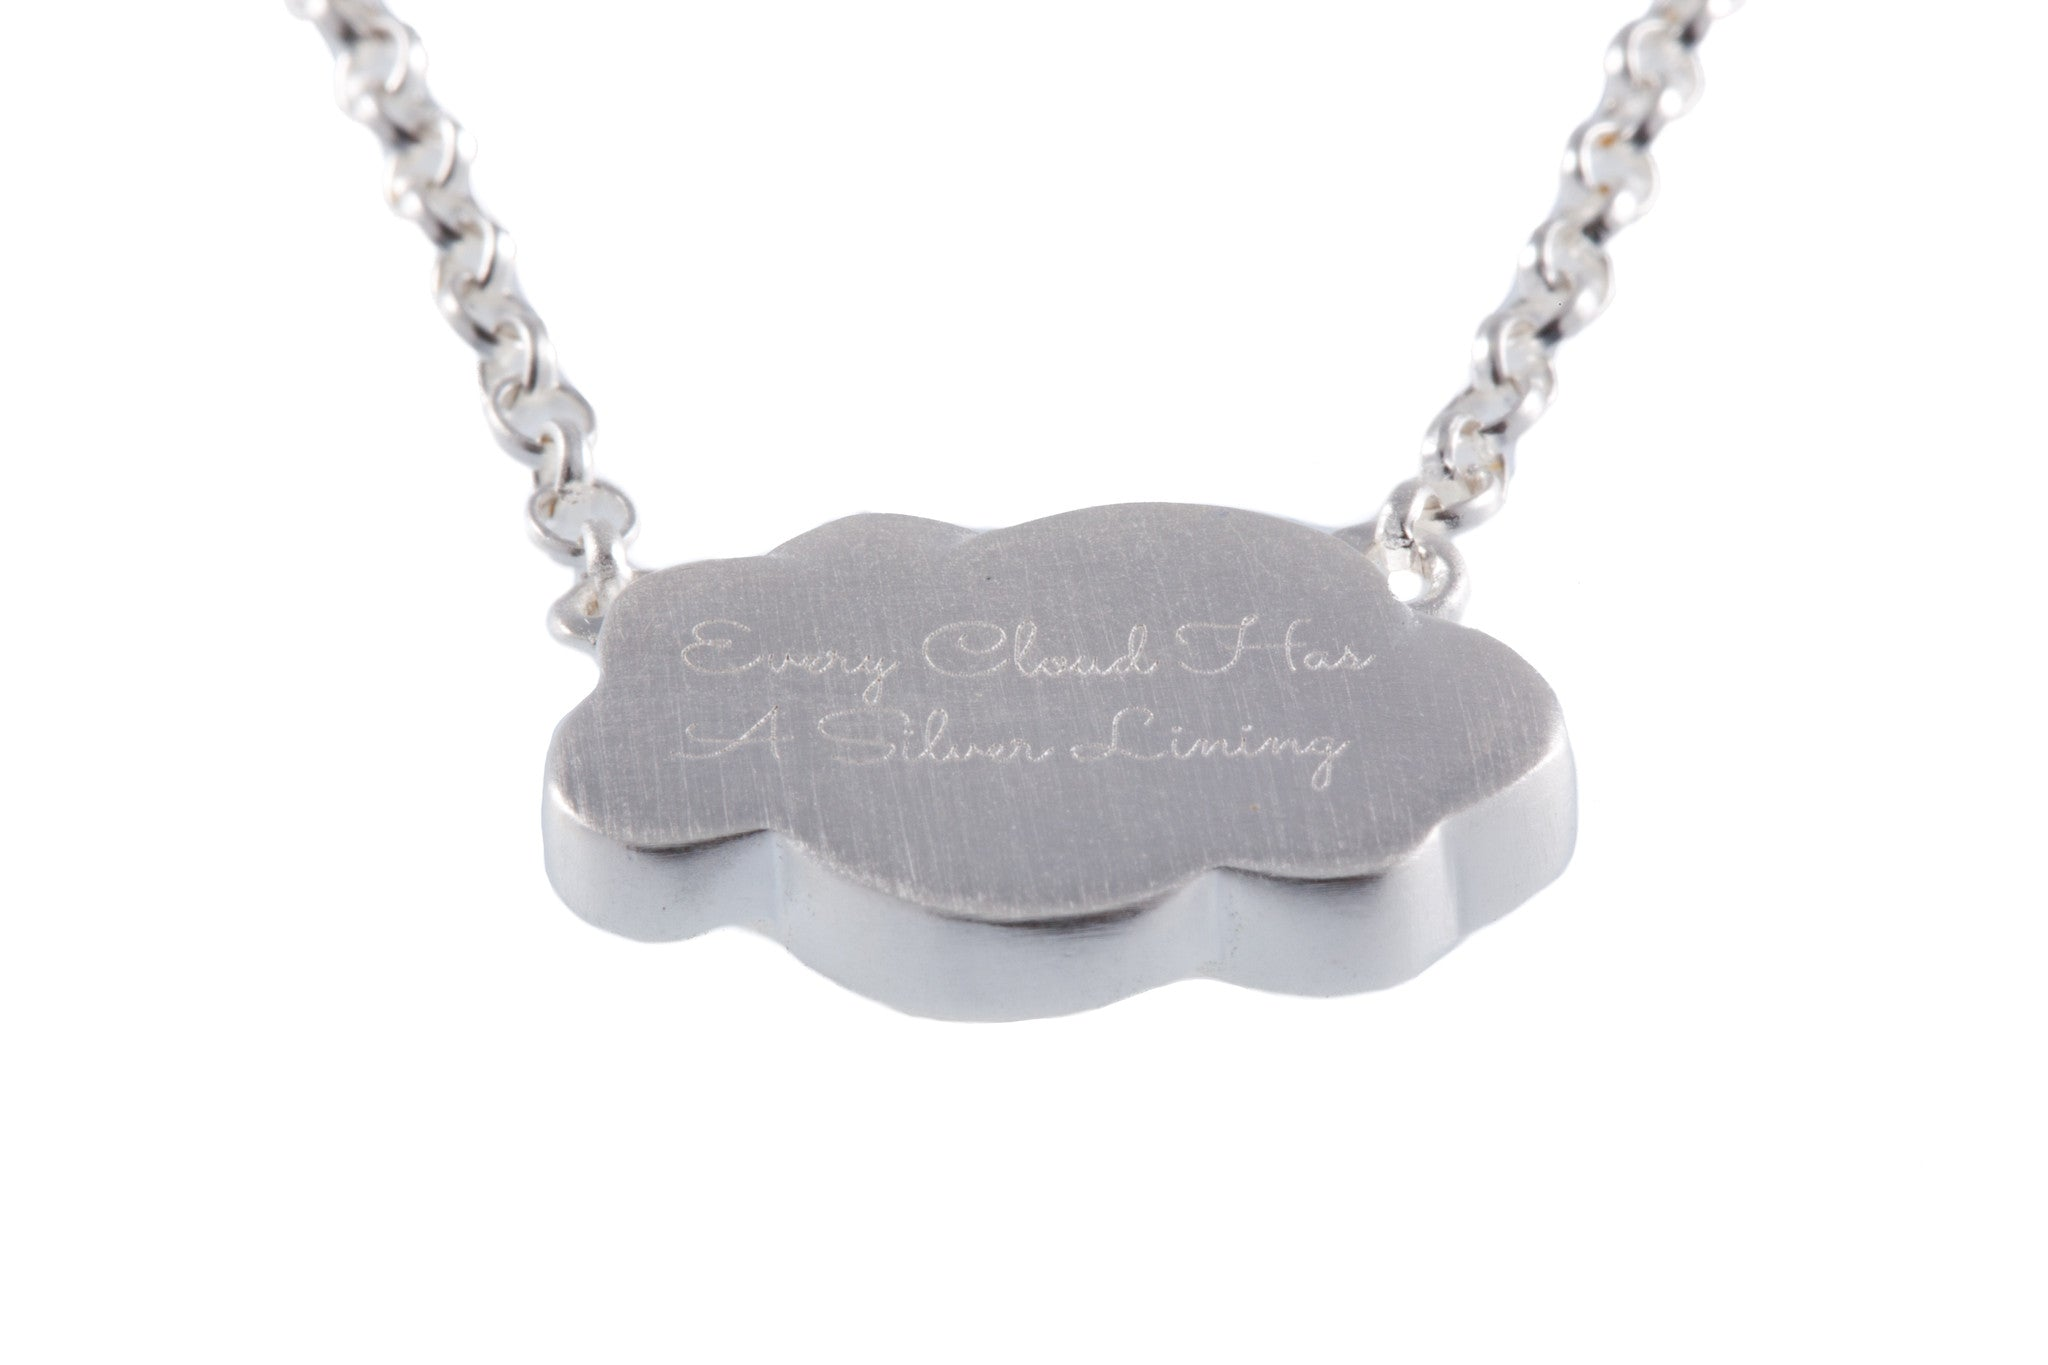 Silver Gold Cloud Pendant inscribed 'Every Cloud has a Silver Lining'